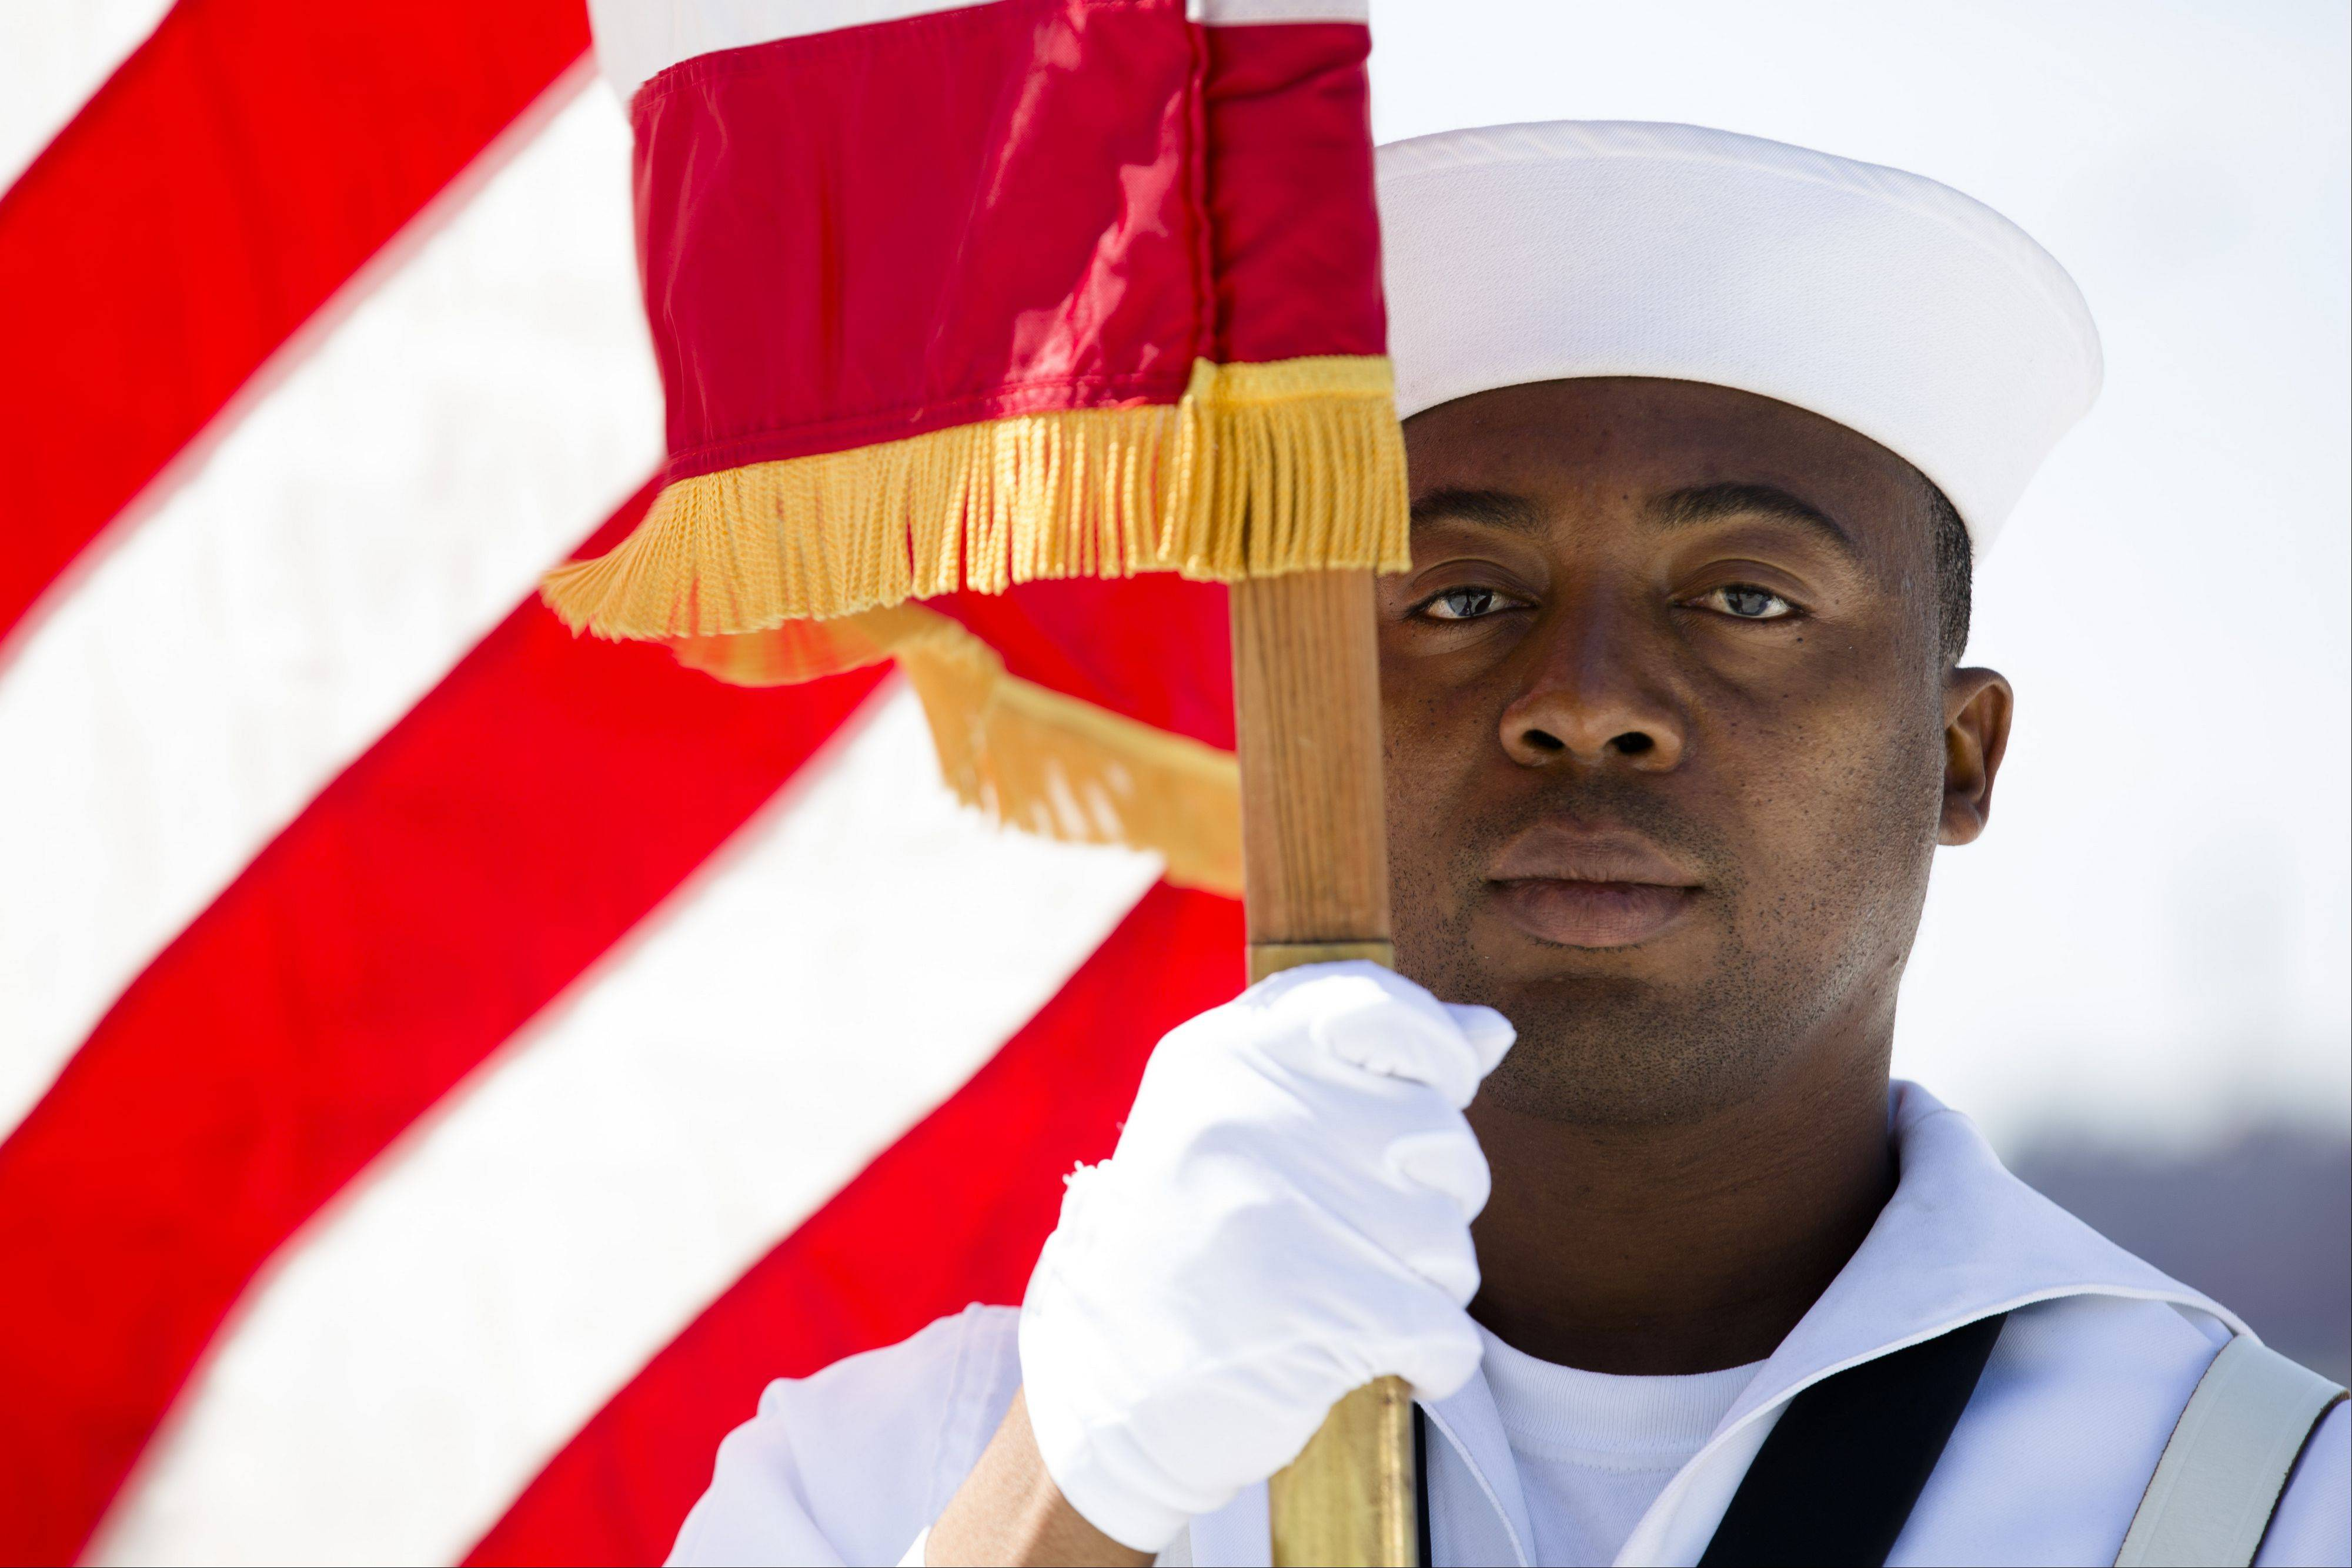 Seaman Daniel Odoi of the Navy Operational Support Center of New York City presents the American flag during a Memorial Day wreath laying at the Franklin D. Roosevelt Four Freedoms Park on Roosevelt Island, Monday, May 27, 2013, in New York.